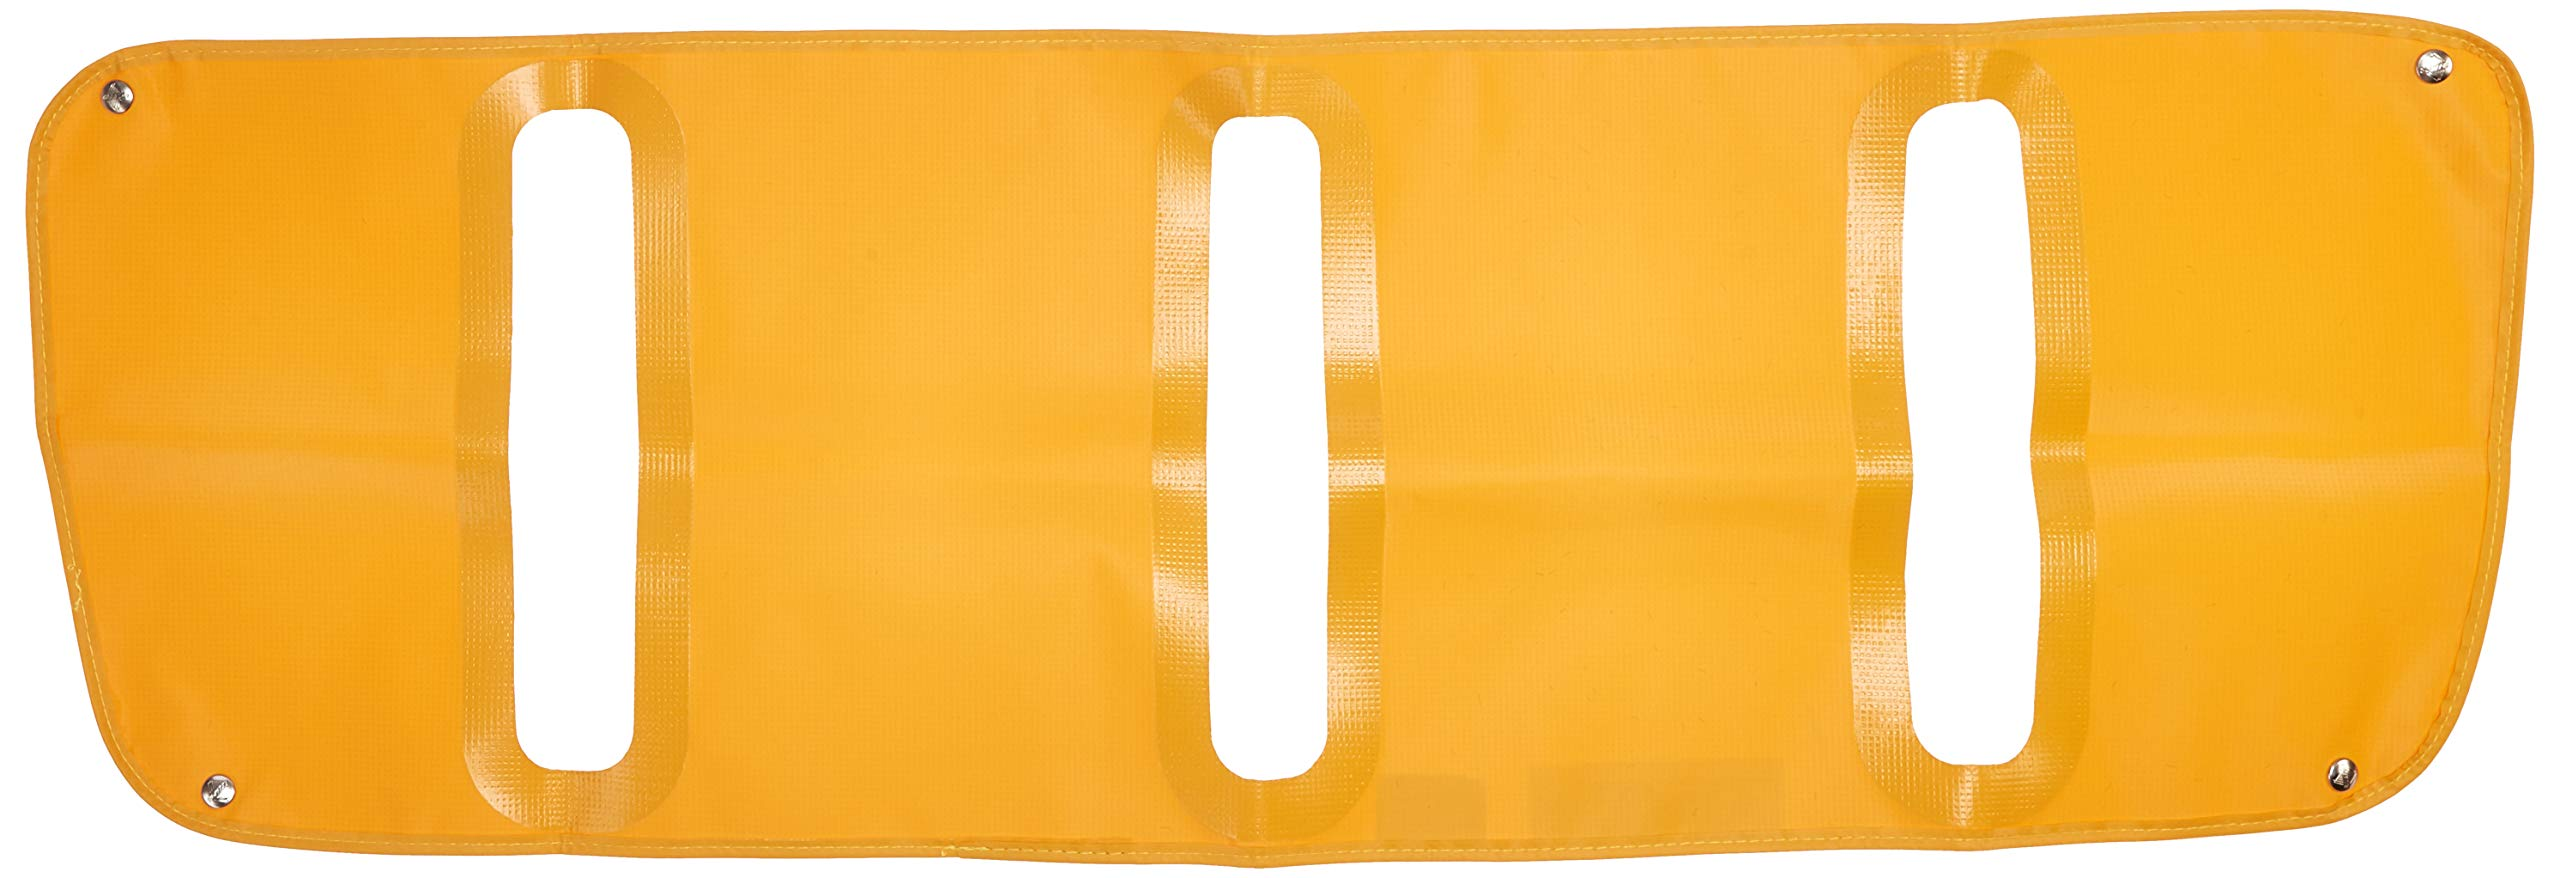 Belmor WF-2175Y-1 Yellow Winterfront Truck Grille Cover for 2003-2018 Freightliner M2 100, 106, 112 (Non-Stationary Grill)